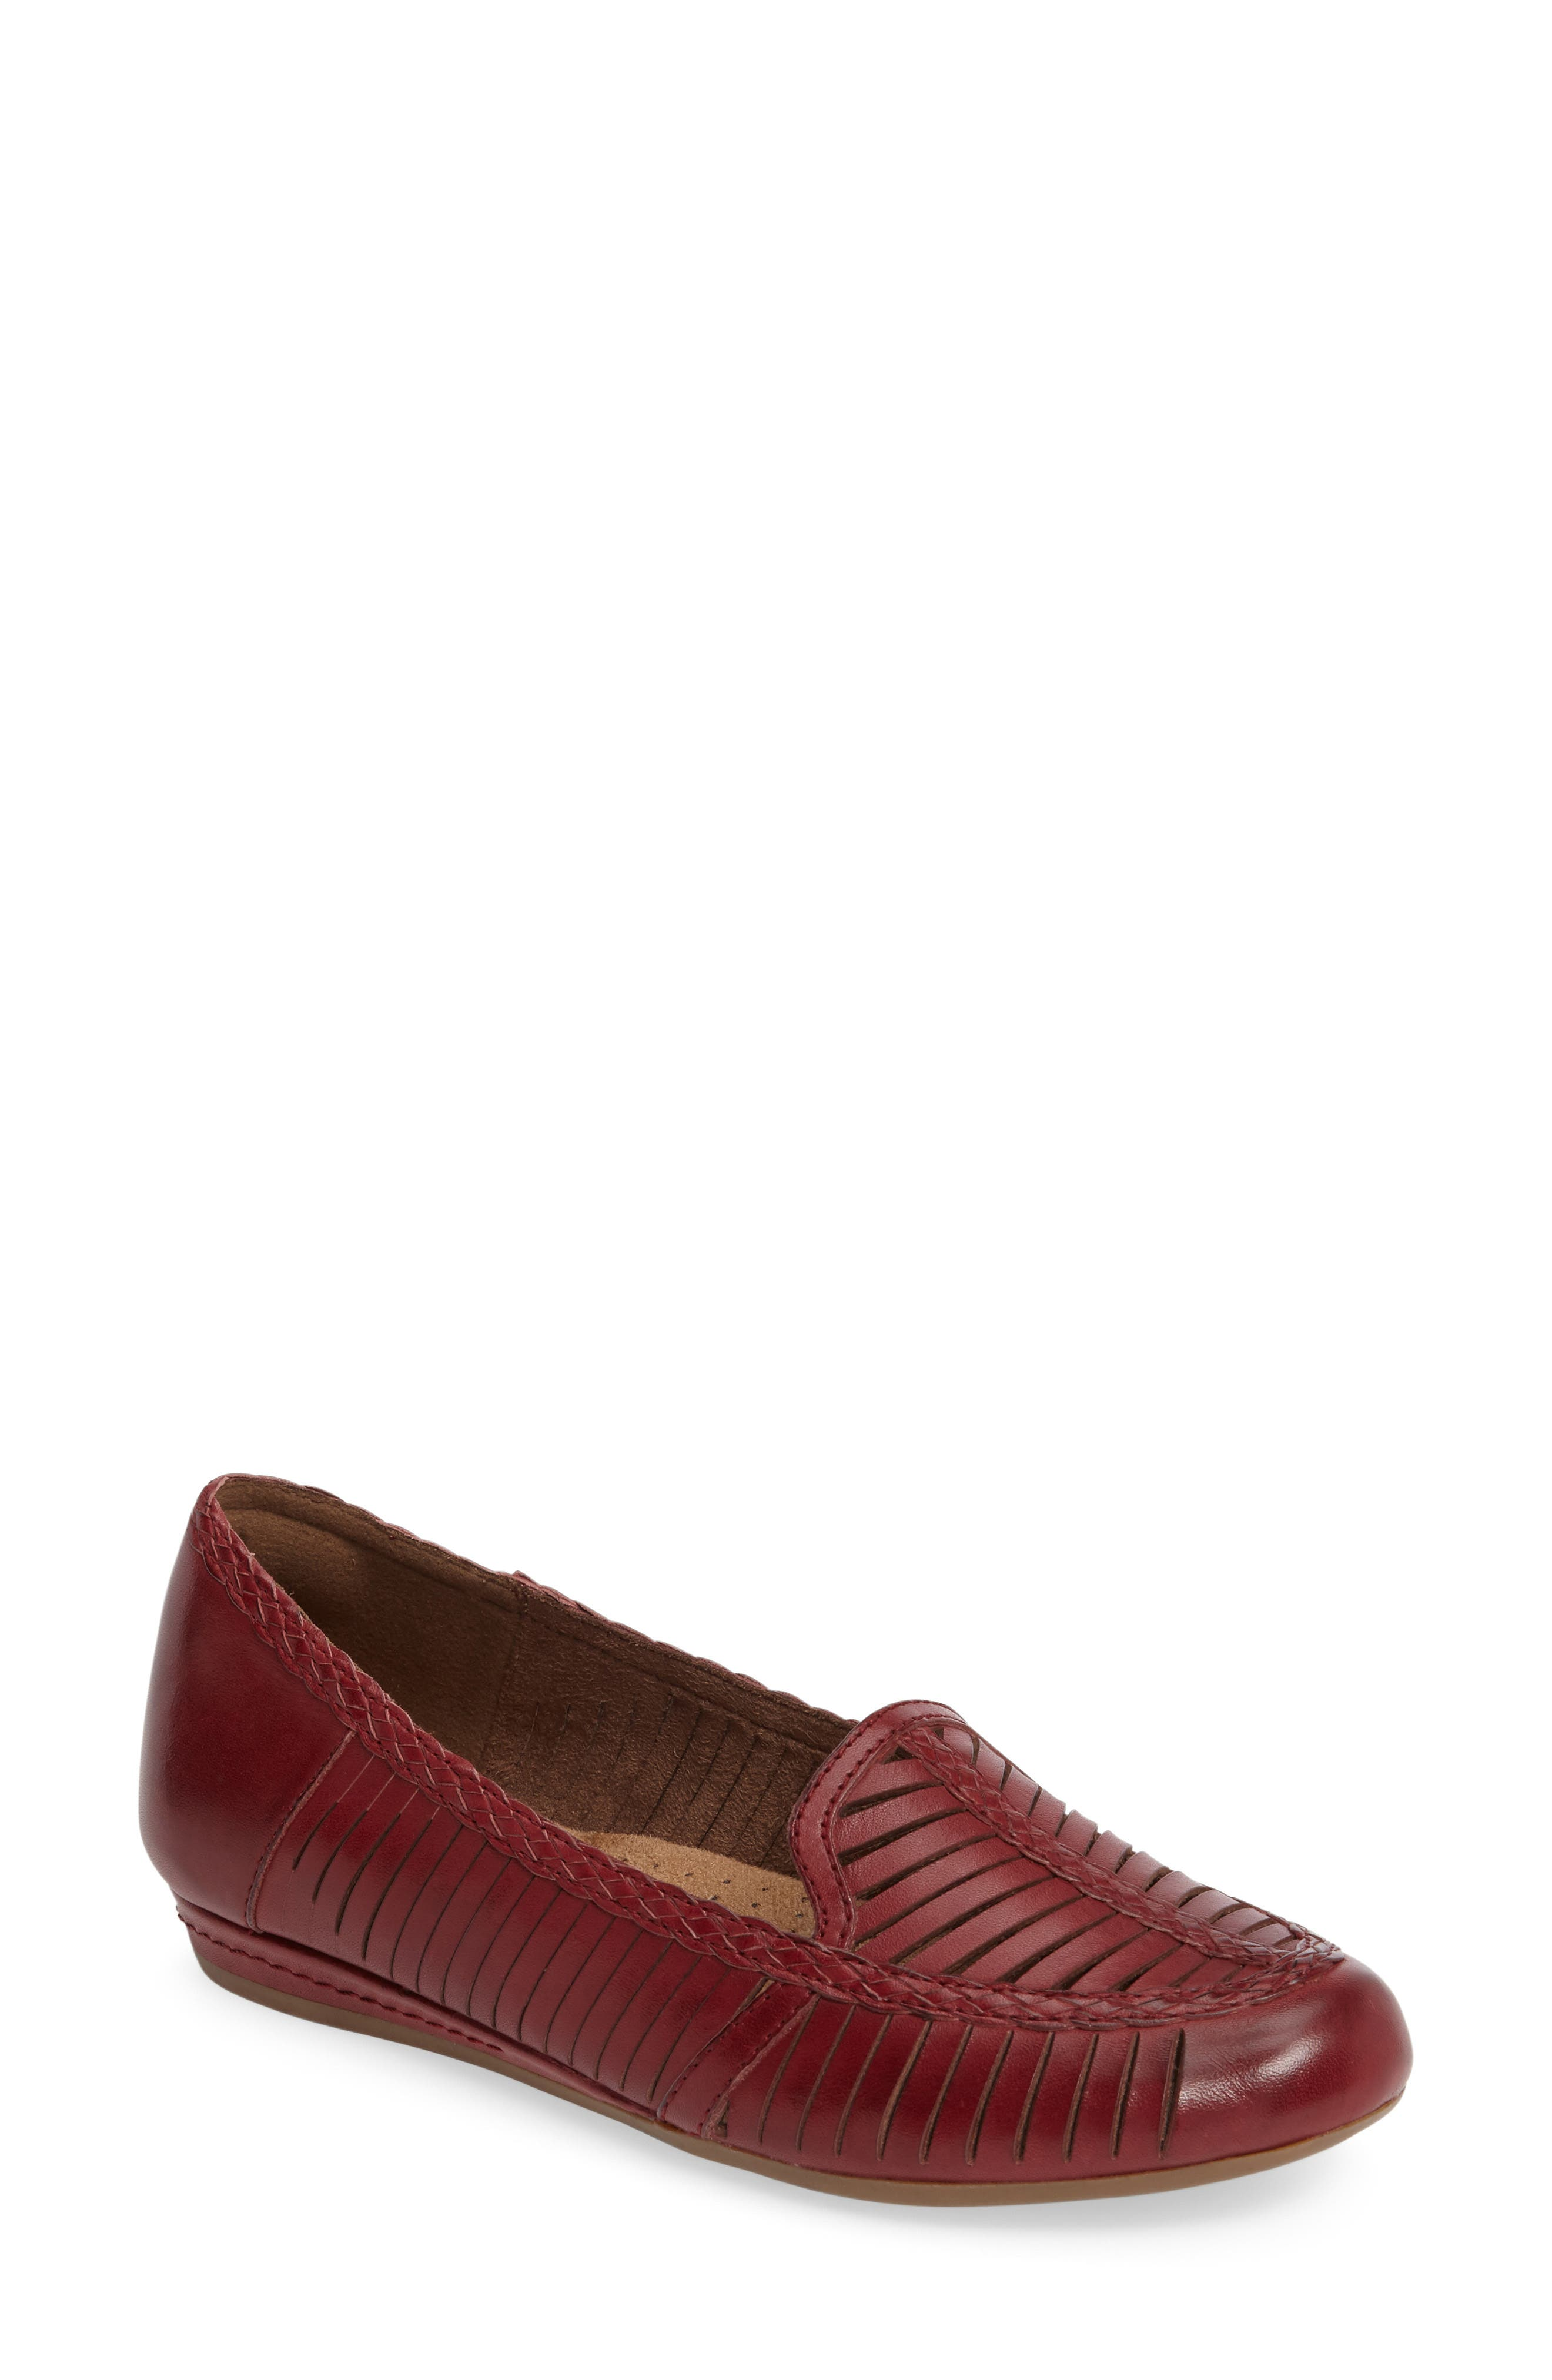 Alternate Image 1 Selected - Rockport Cobb Hill Galway Loafer (Women)